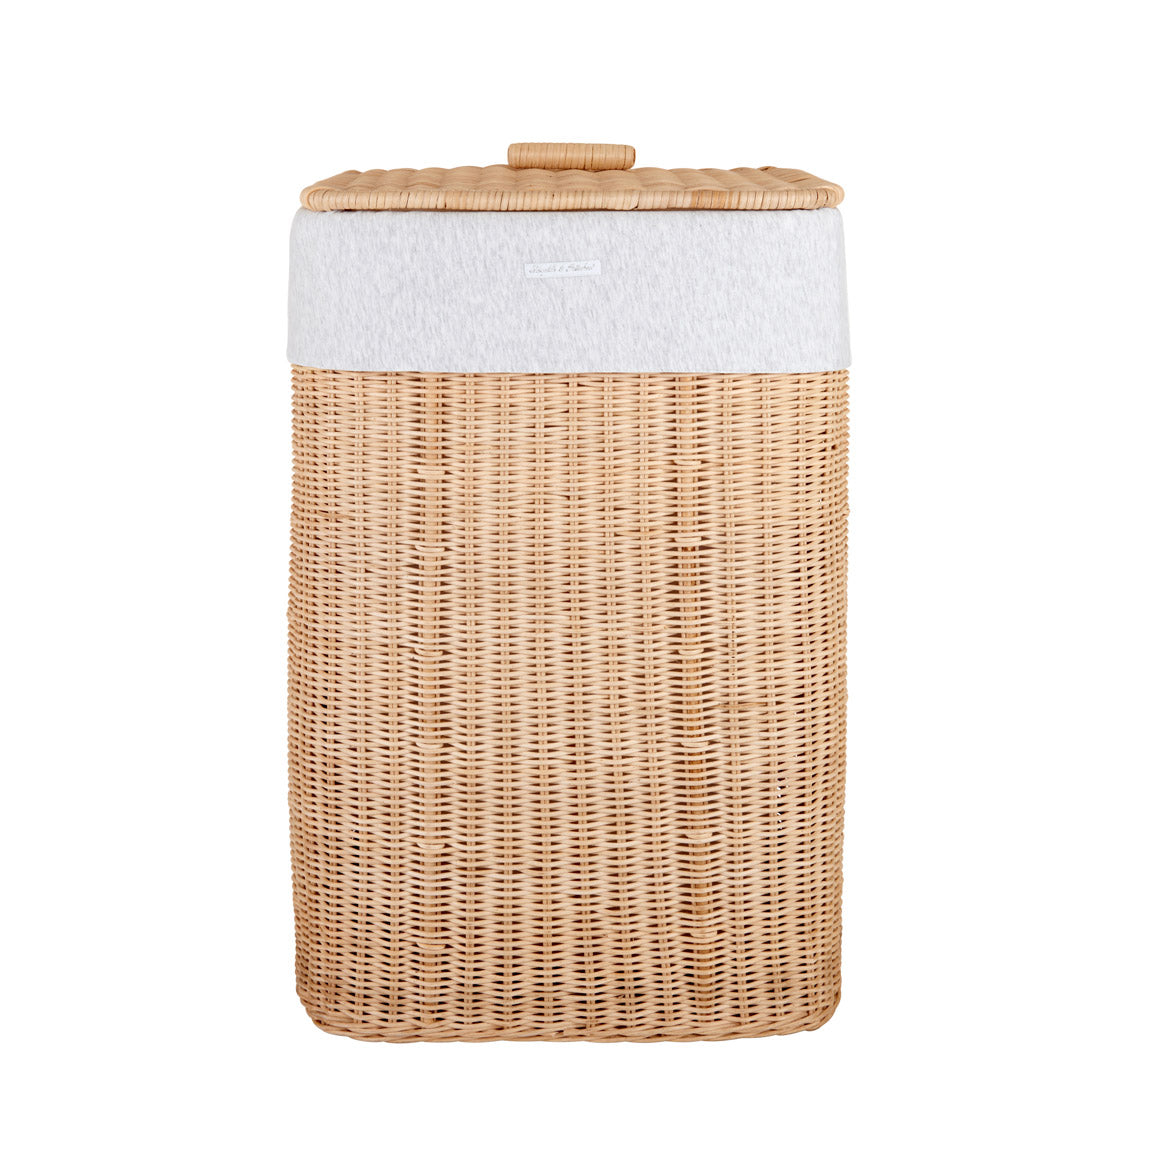 Theophile & Patachou Natural Rectangular Wicker Basket and Cover Linen - Grey